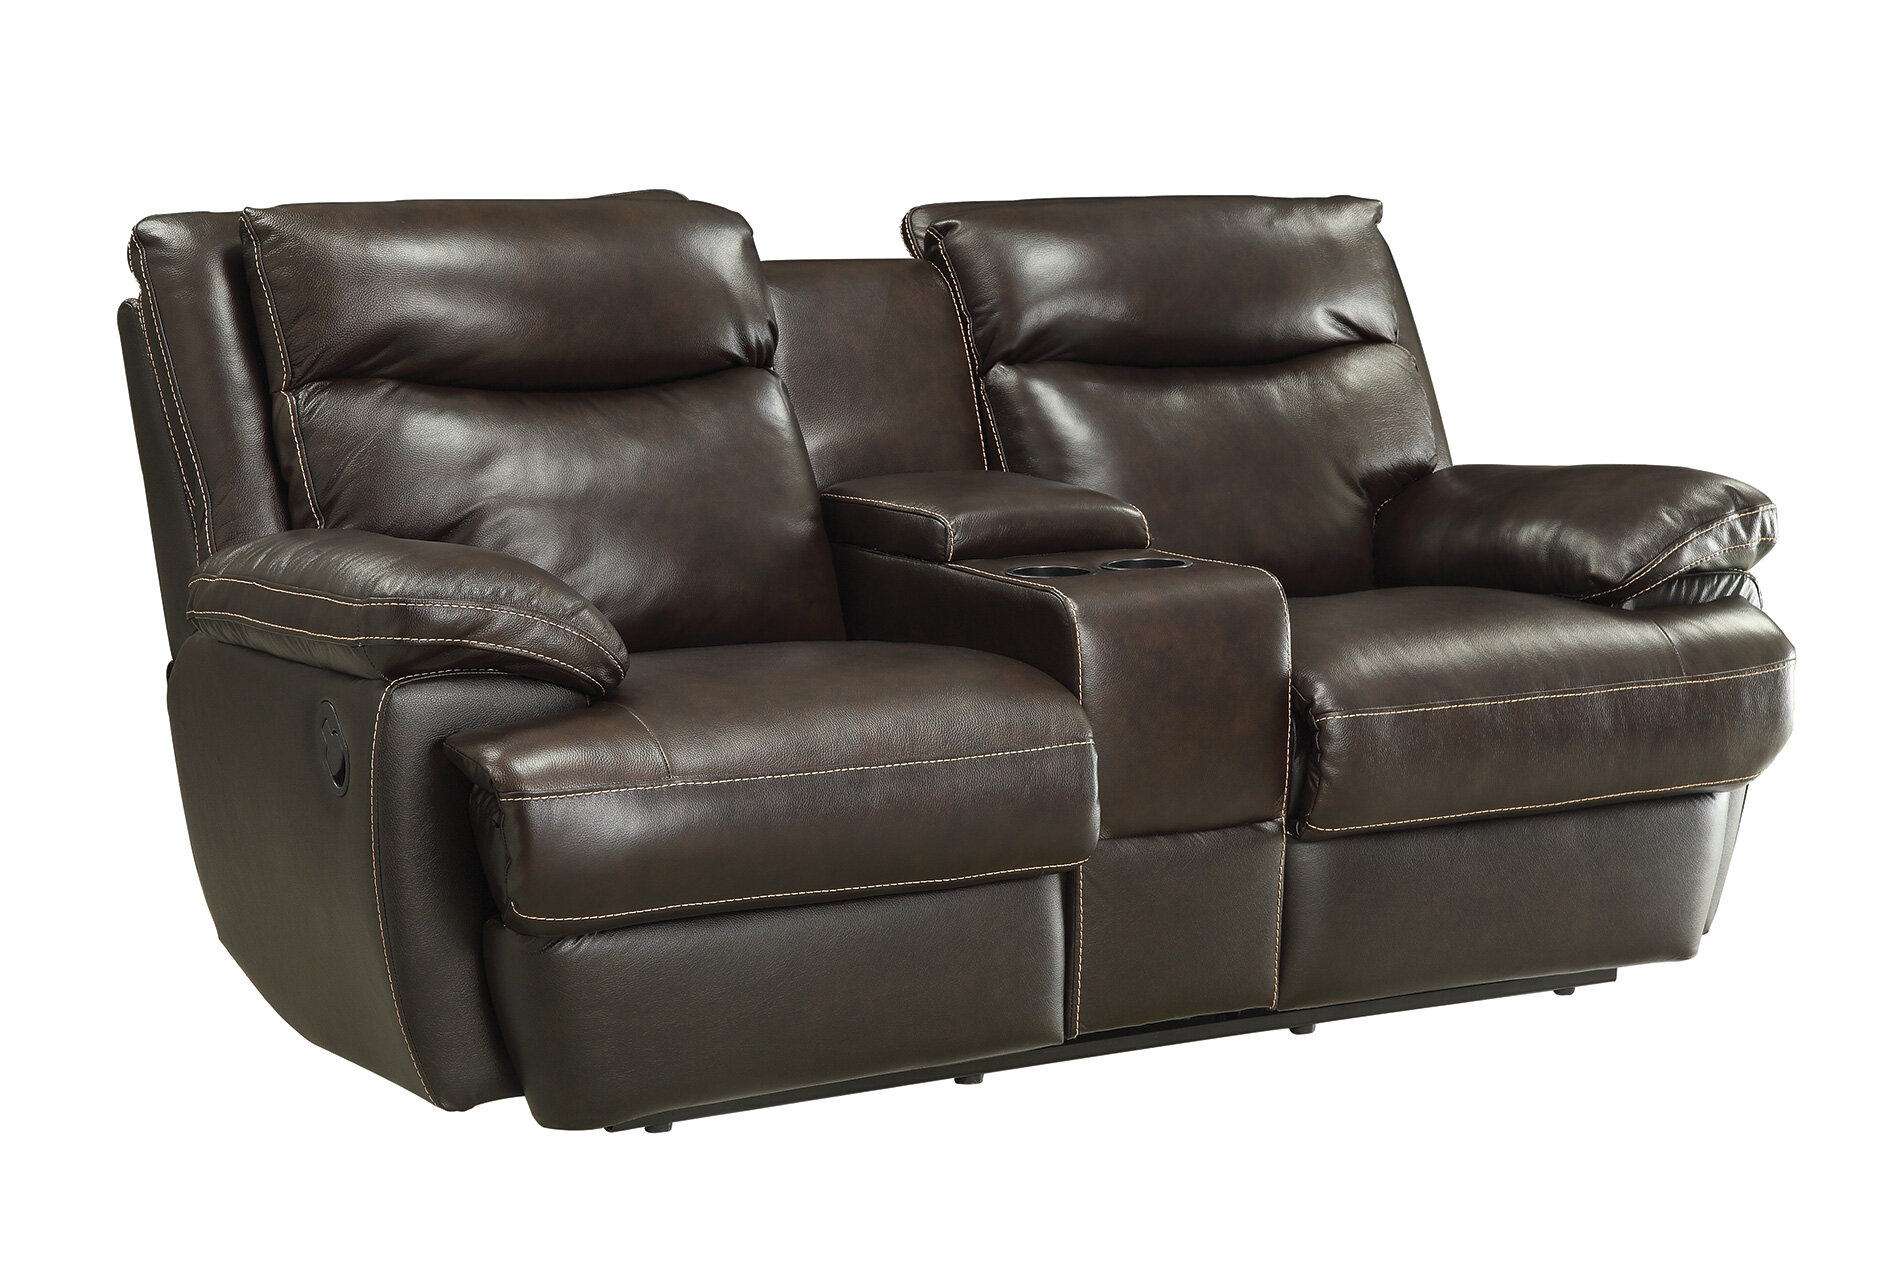 loveseat electric full recliner choosing furniture for reclining express living room of tips the sofa furnishing your size leather recliners and